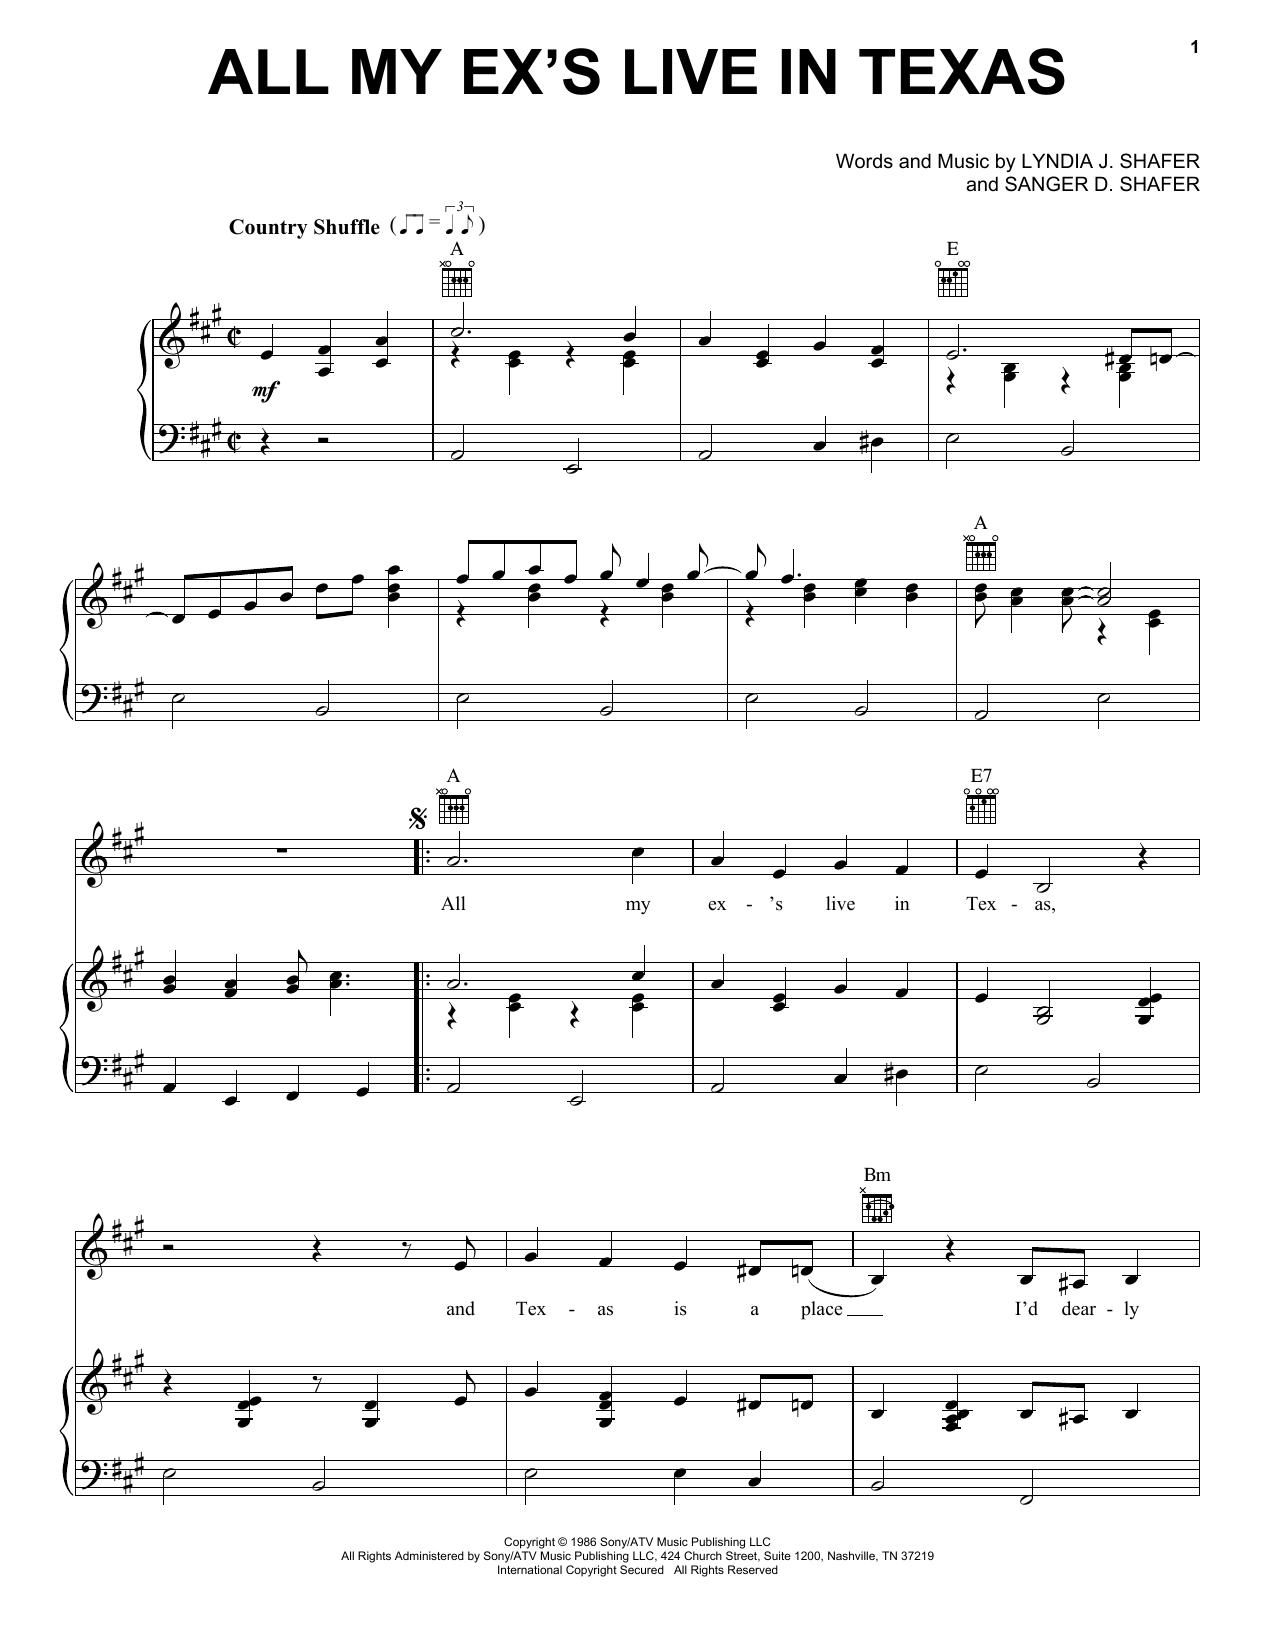 All My Ex's Live In Texas sheet music